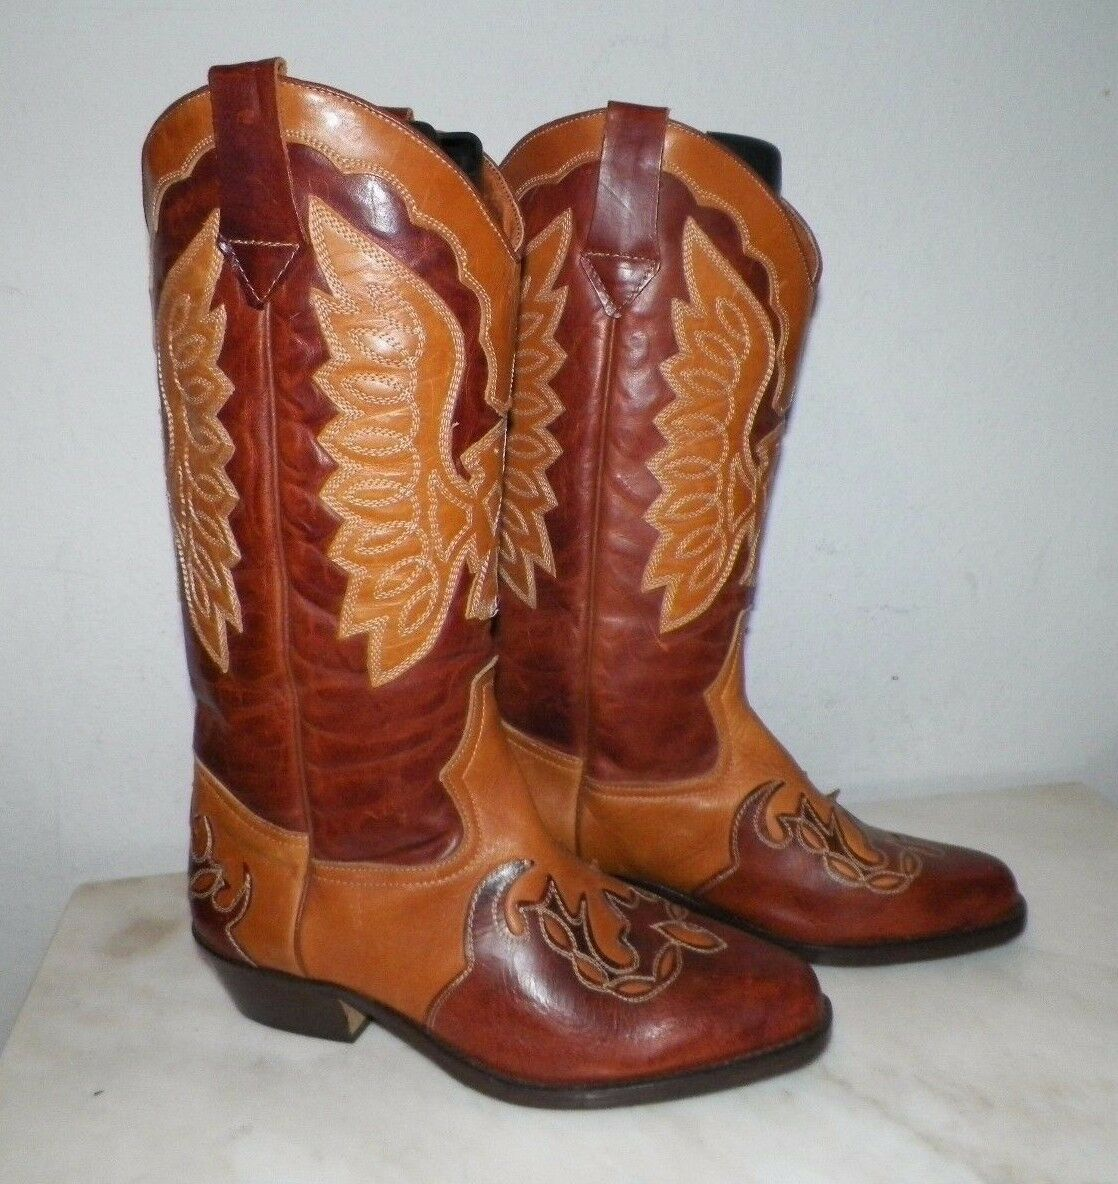 WOMEN'S NORDSTROM FANCY WESTERN COWBOY BOOTS LIGHT & DARK BROWN SZ 42 ITALY MADE